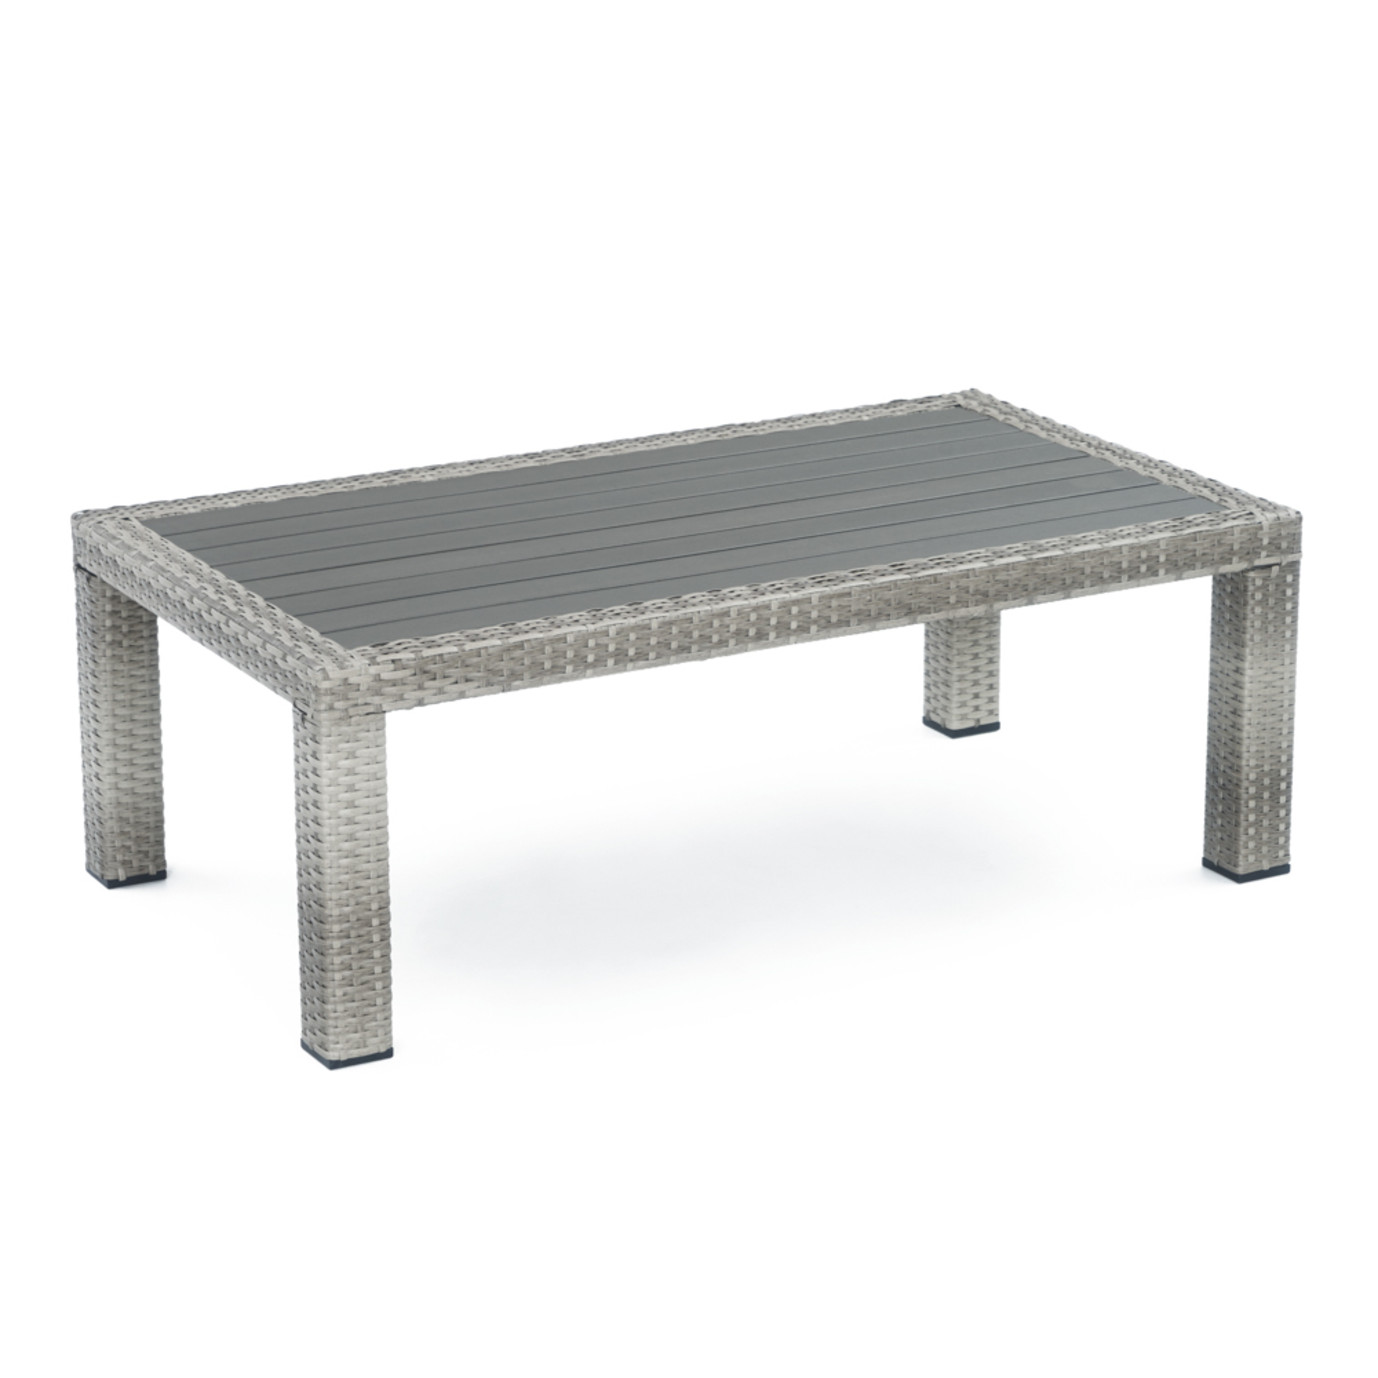 Cannes™ Deluxe Wood Top Coffee Table